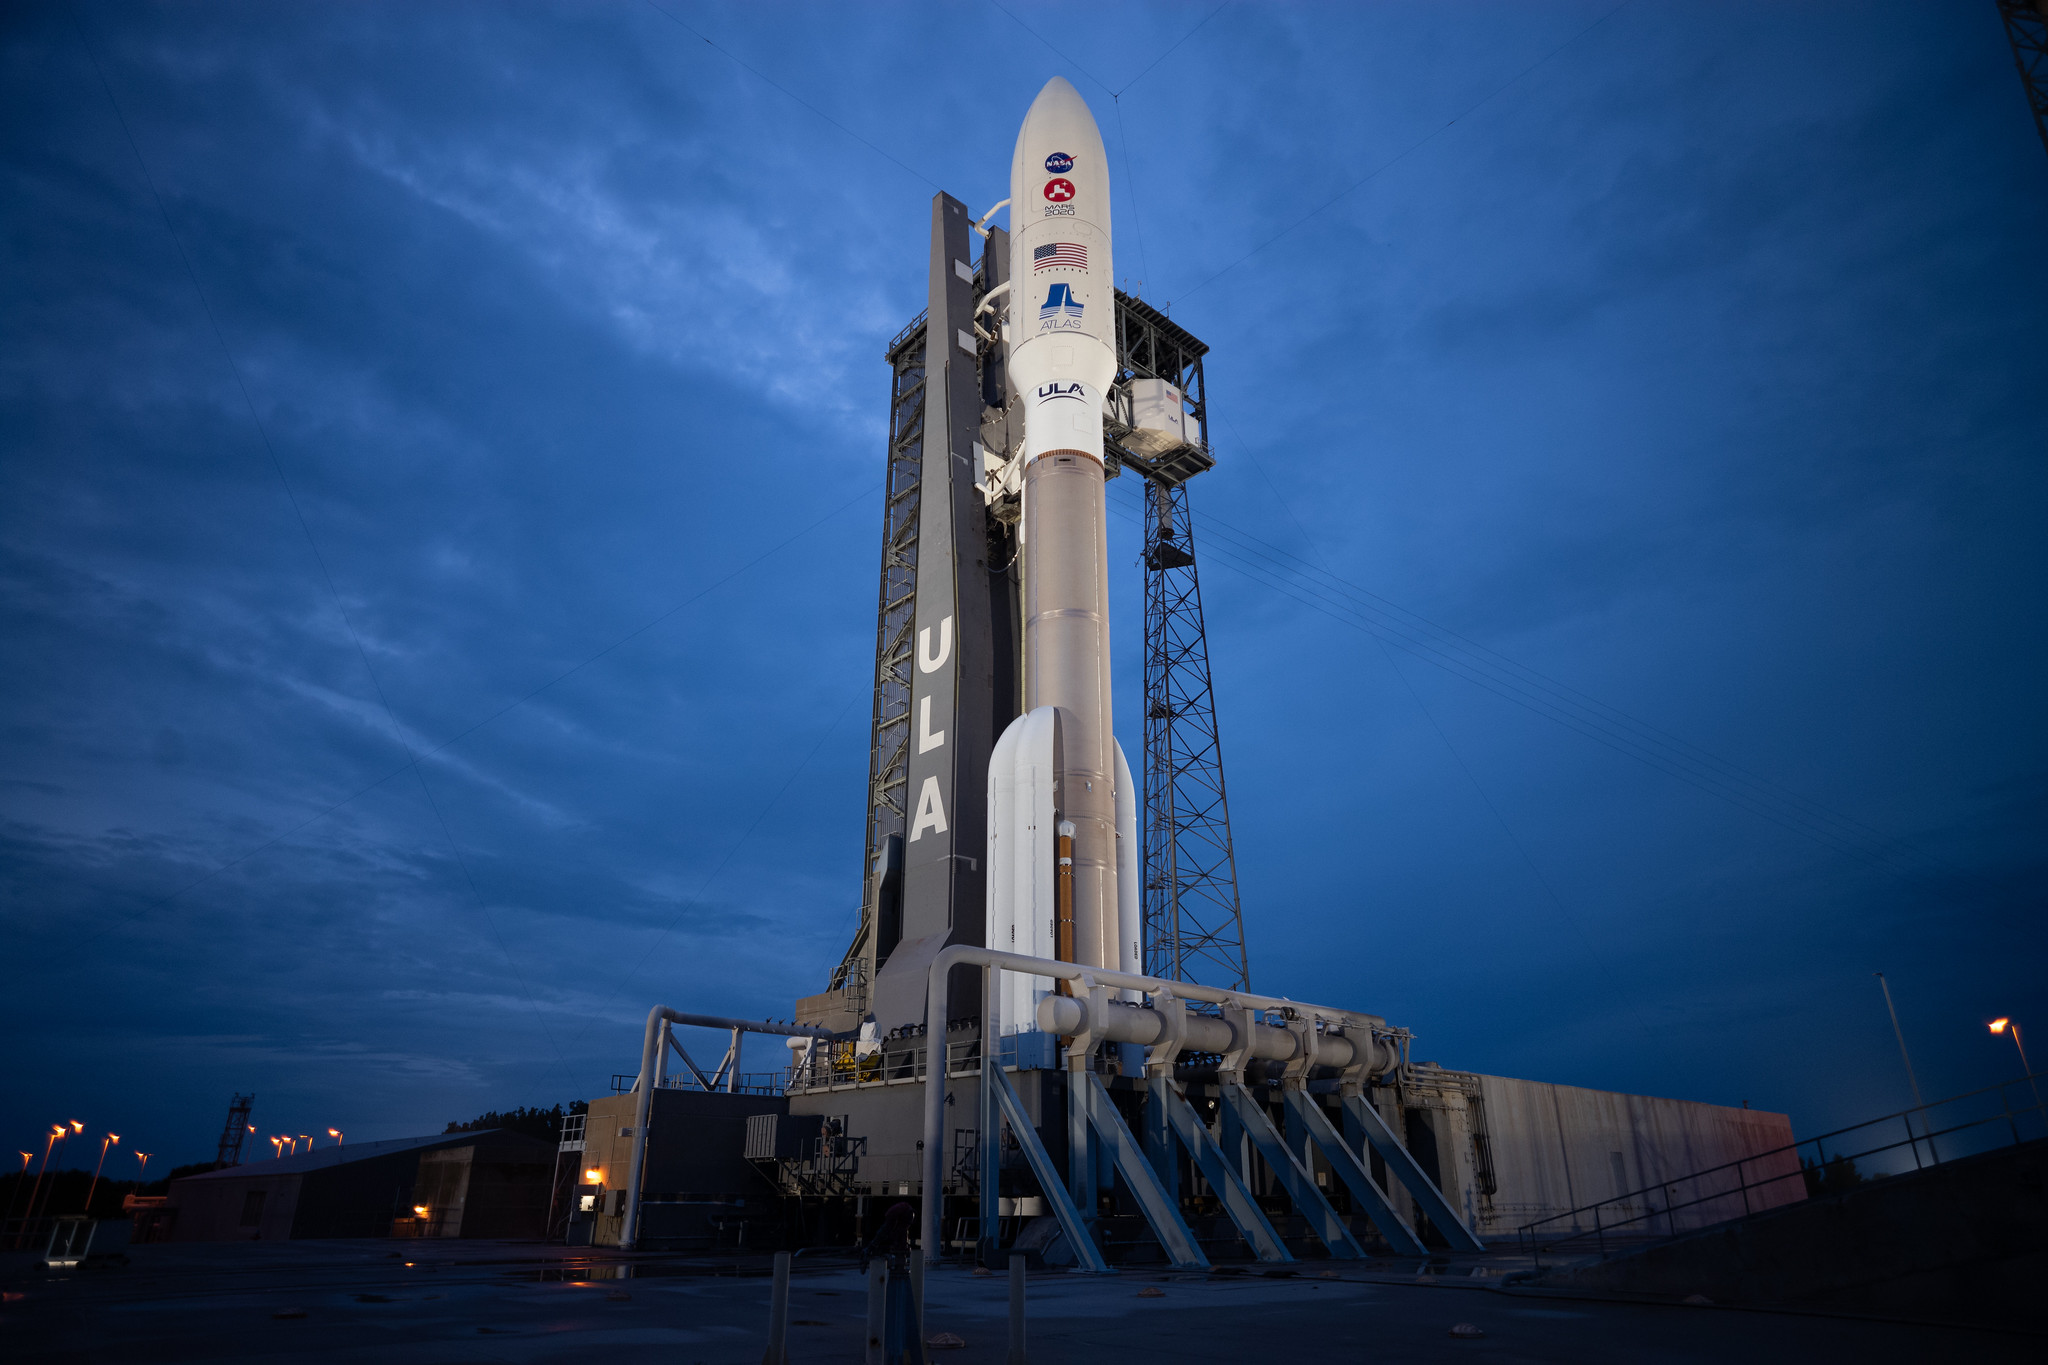 NASA's Mars 2020 Perseverance rover is poised and ready to launch to Mars aboard a United Launch Alliance Atlas V rocket.